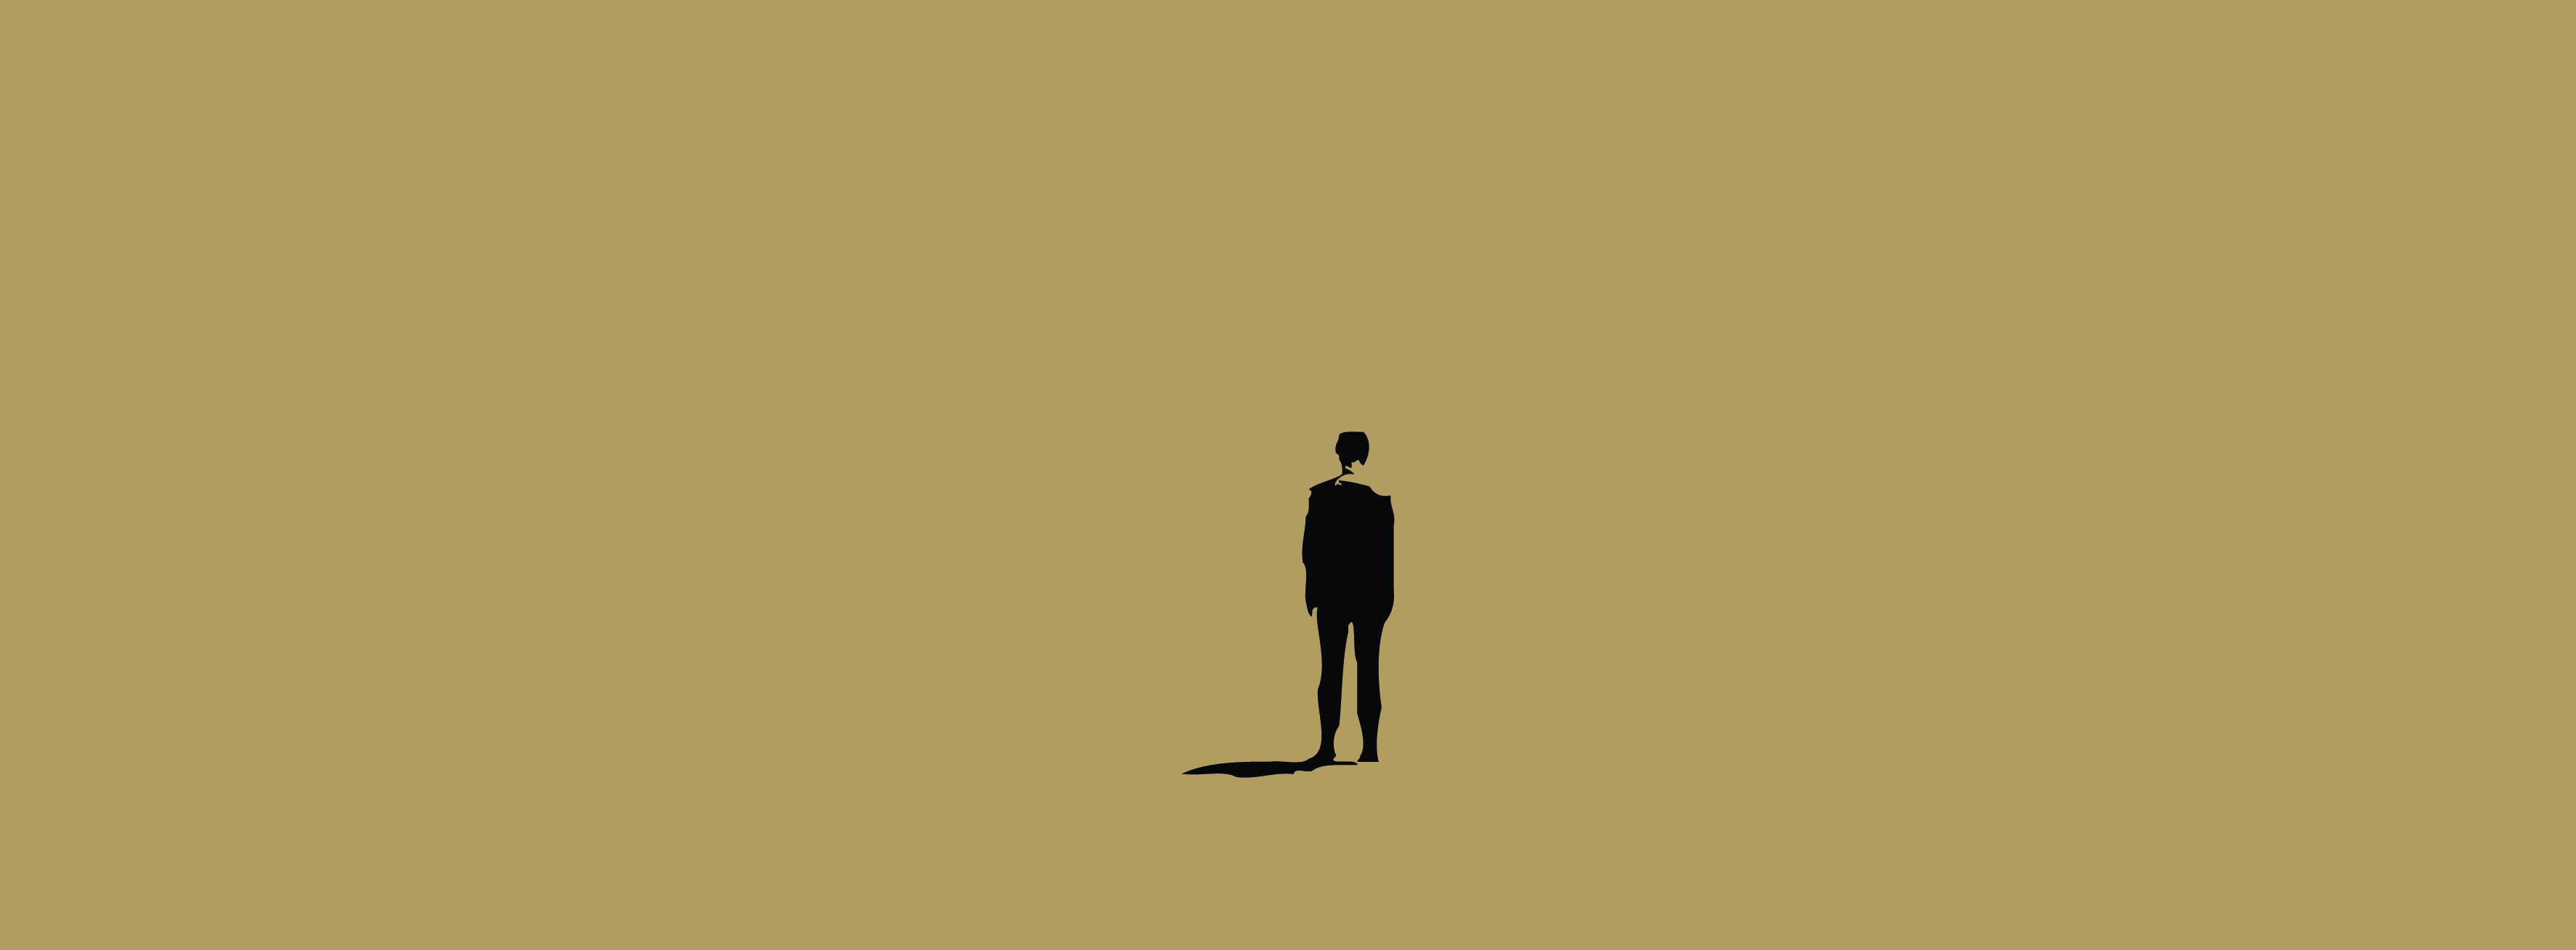 minimalist ~ (500) Days of Summer by Credo2308 on DeviantArt